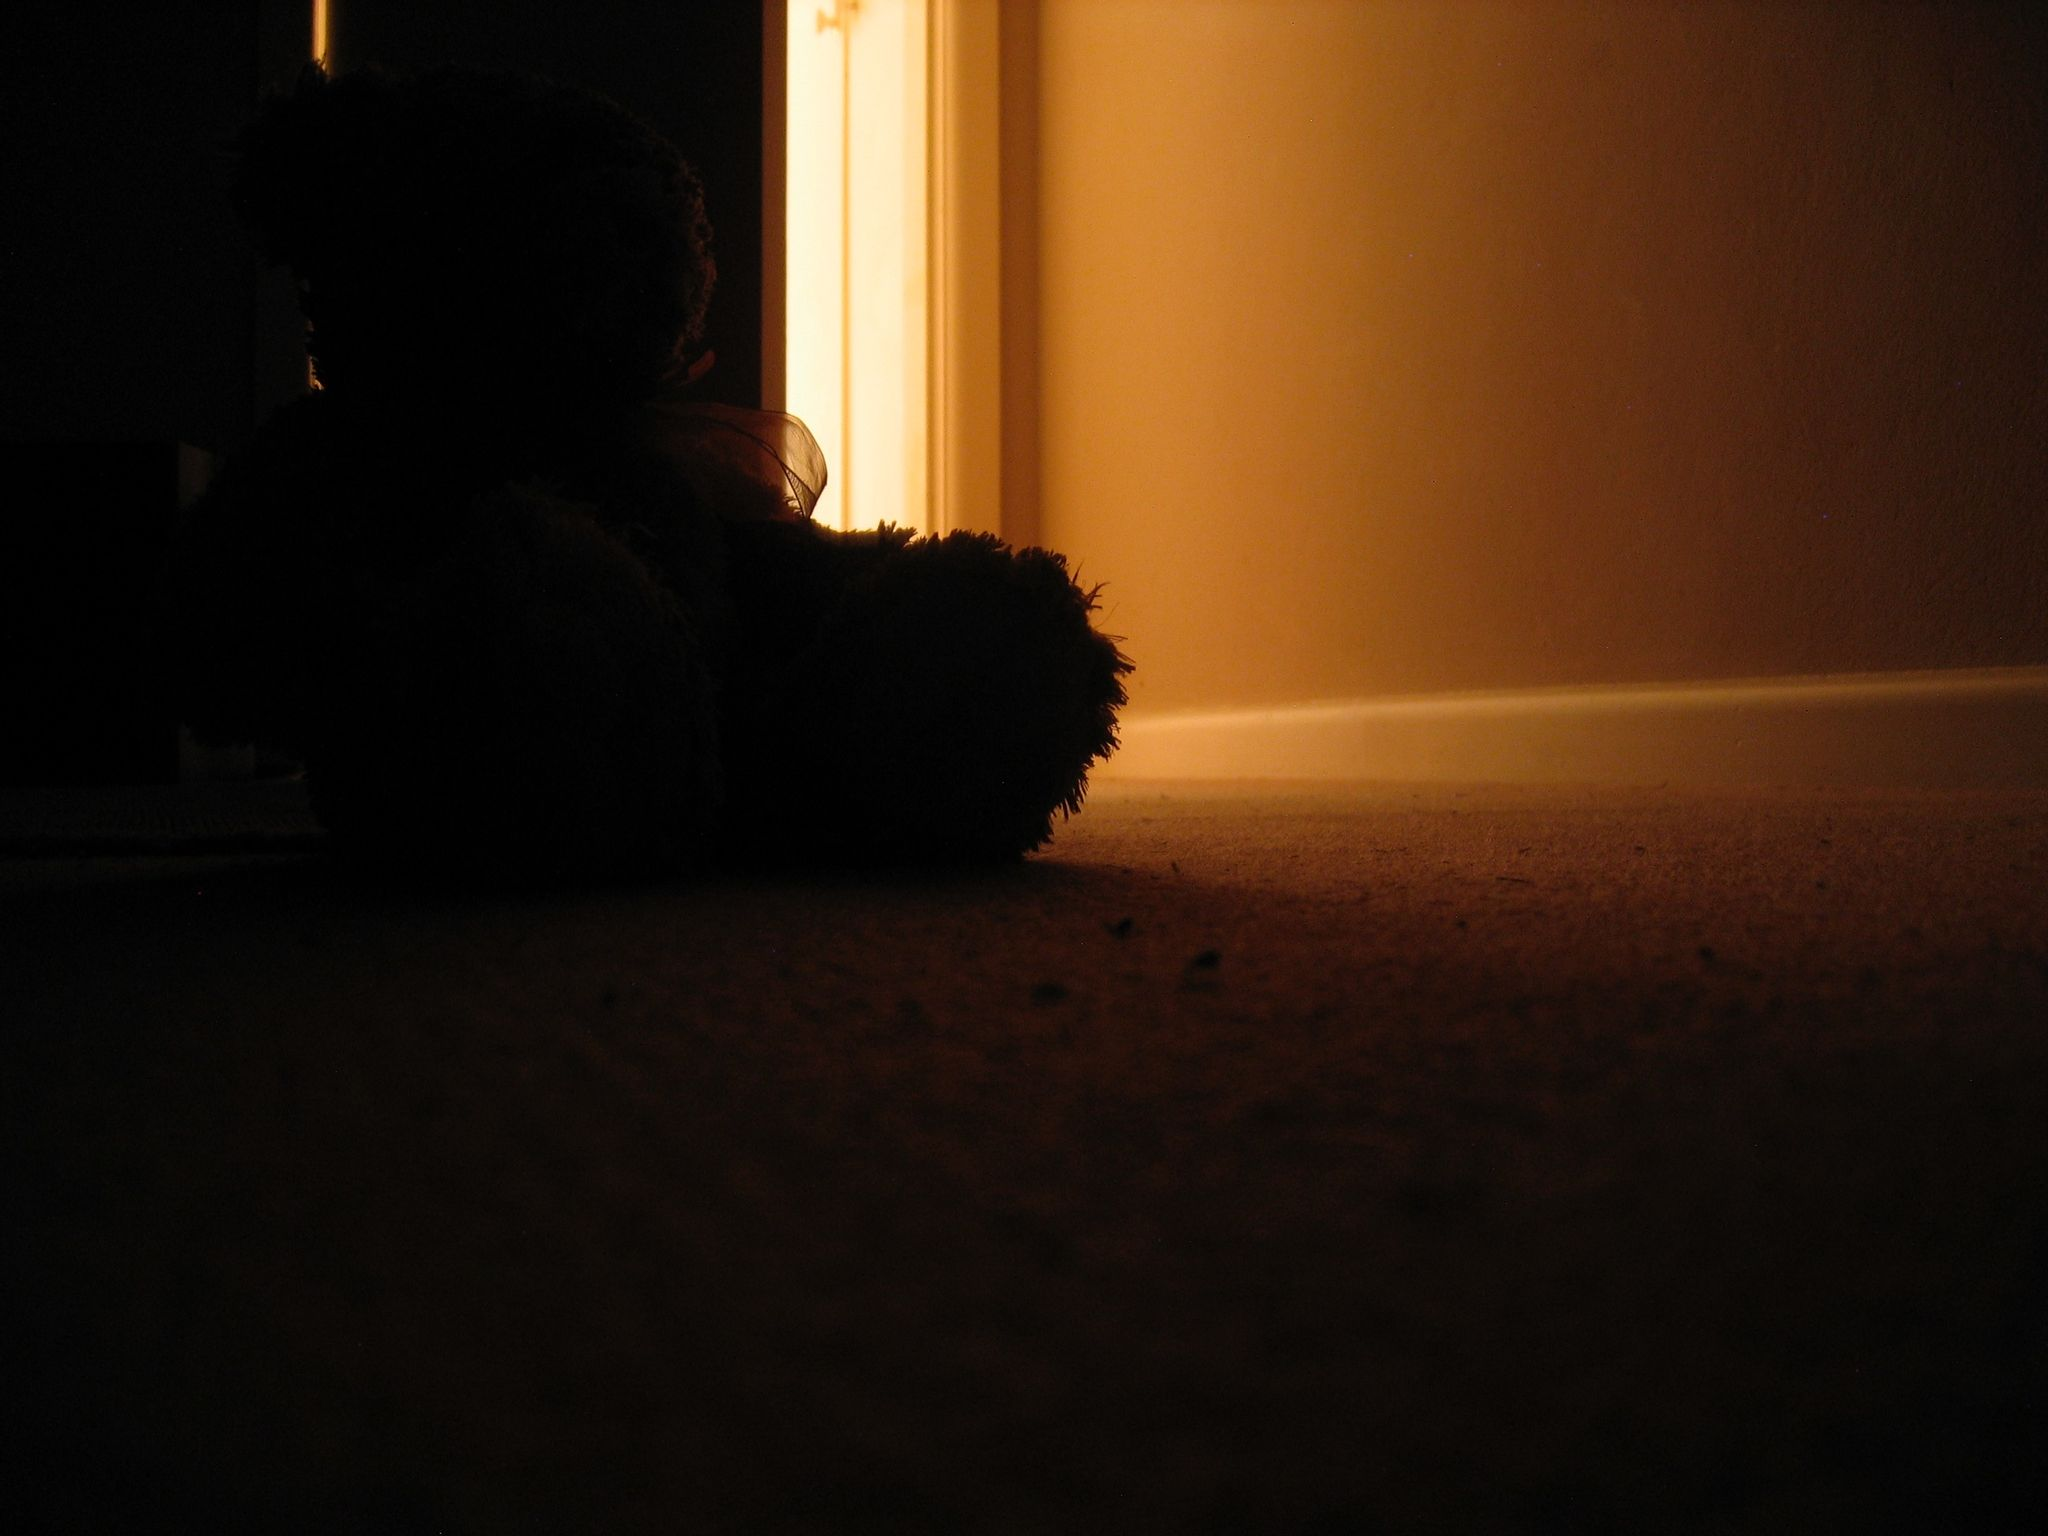 A long exposure photo looking out towards a partially-closed door, taken with the camera sitting on the floor. The room is dark and there's very warm light coming in from the doorway. A soft toy of some sort is visible against the door, only the edges of it are lit.